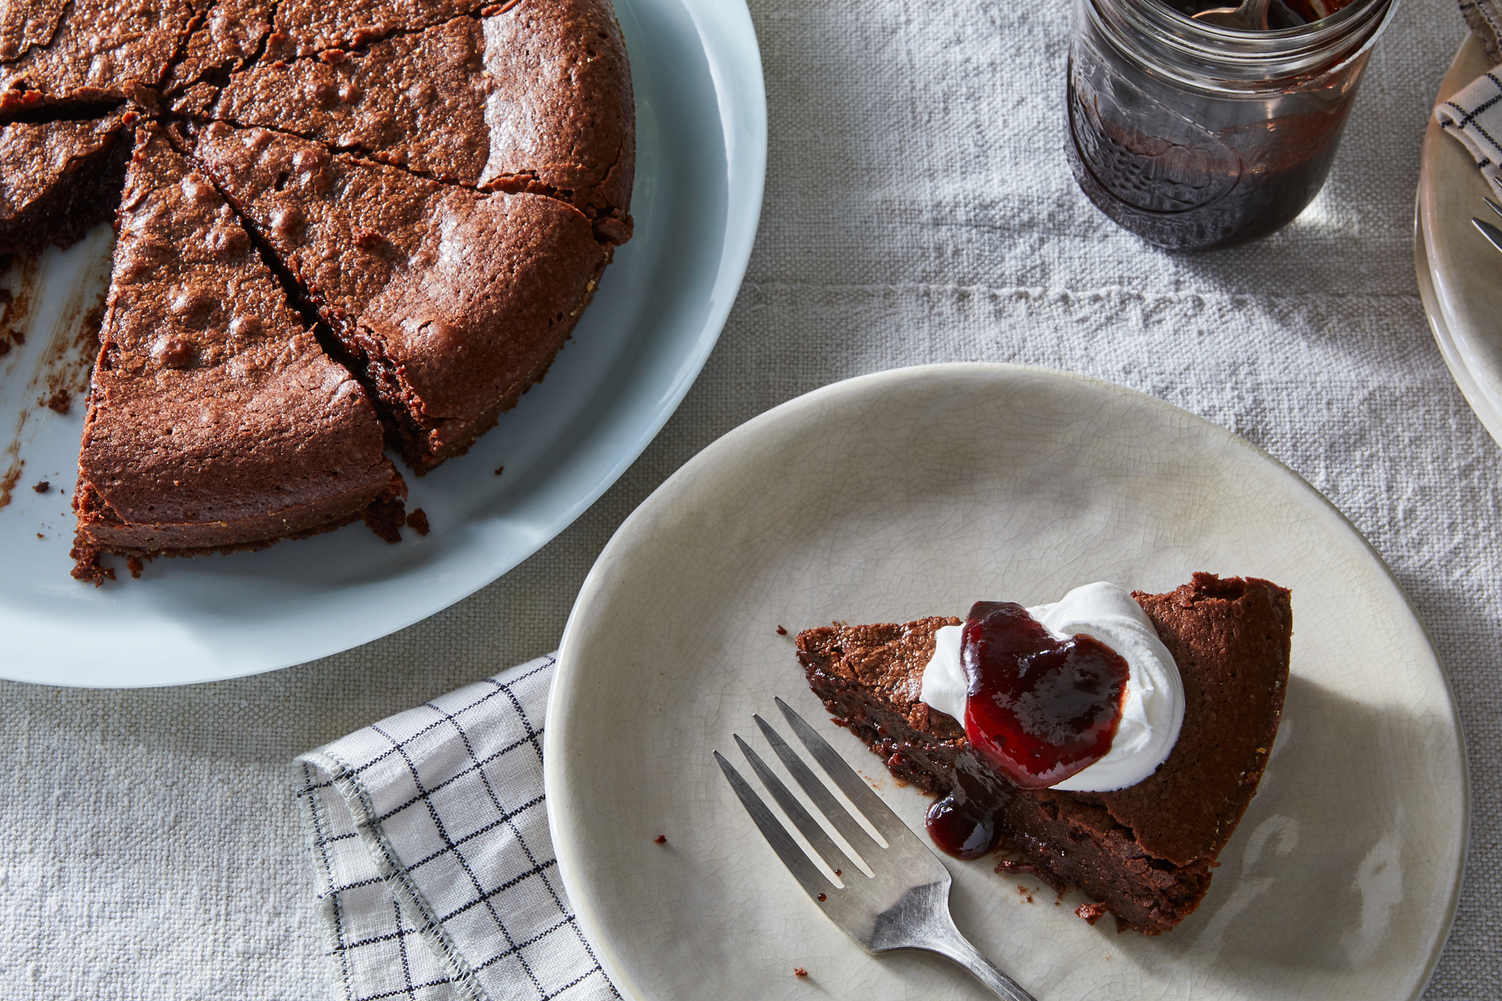 The Fudgiest Chocolate Cake Needs Just 5 Ingredients & 20 Minutes